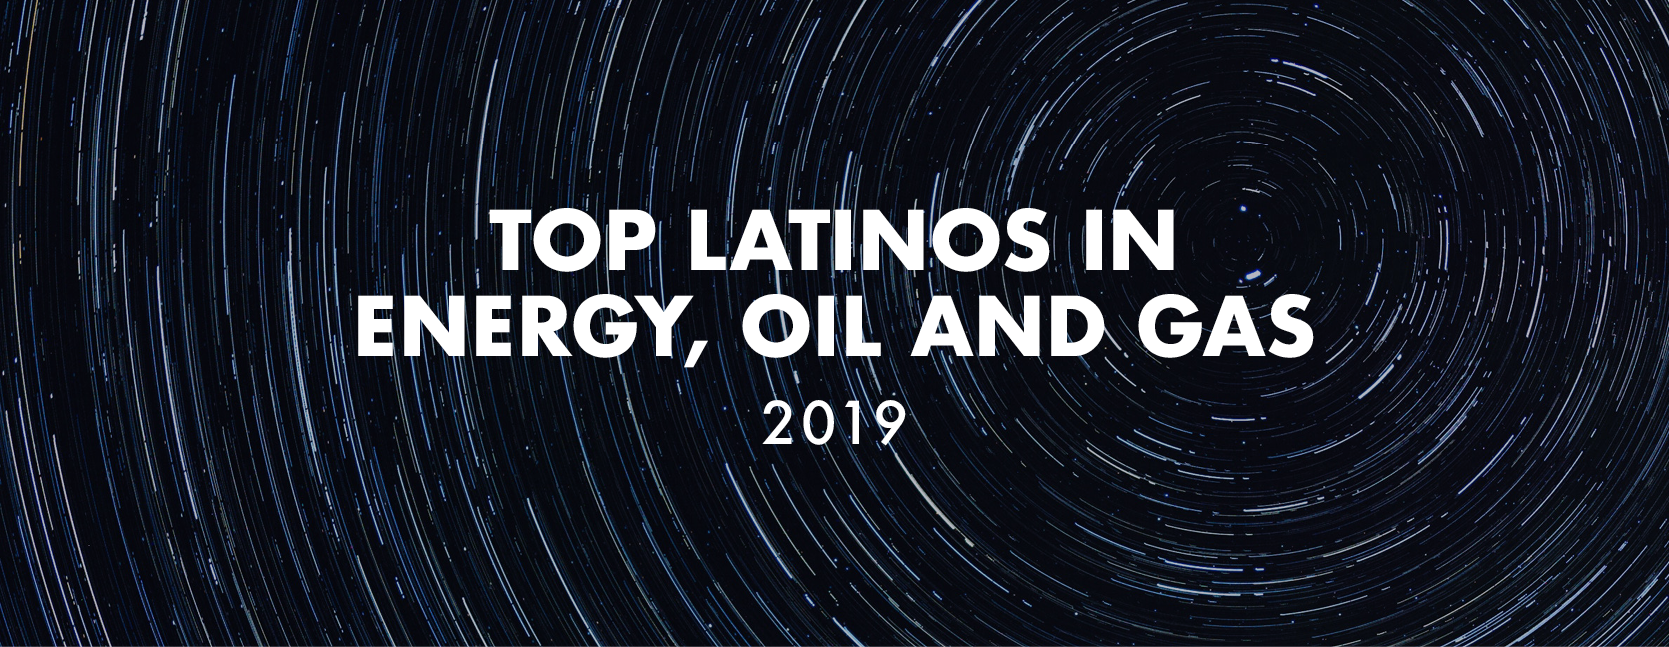 Top Latinos in Energy, Oil and Gas for 2019 — Latino Leaders